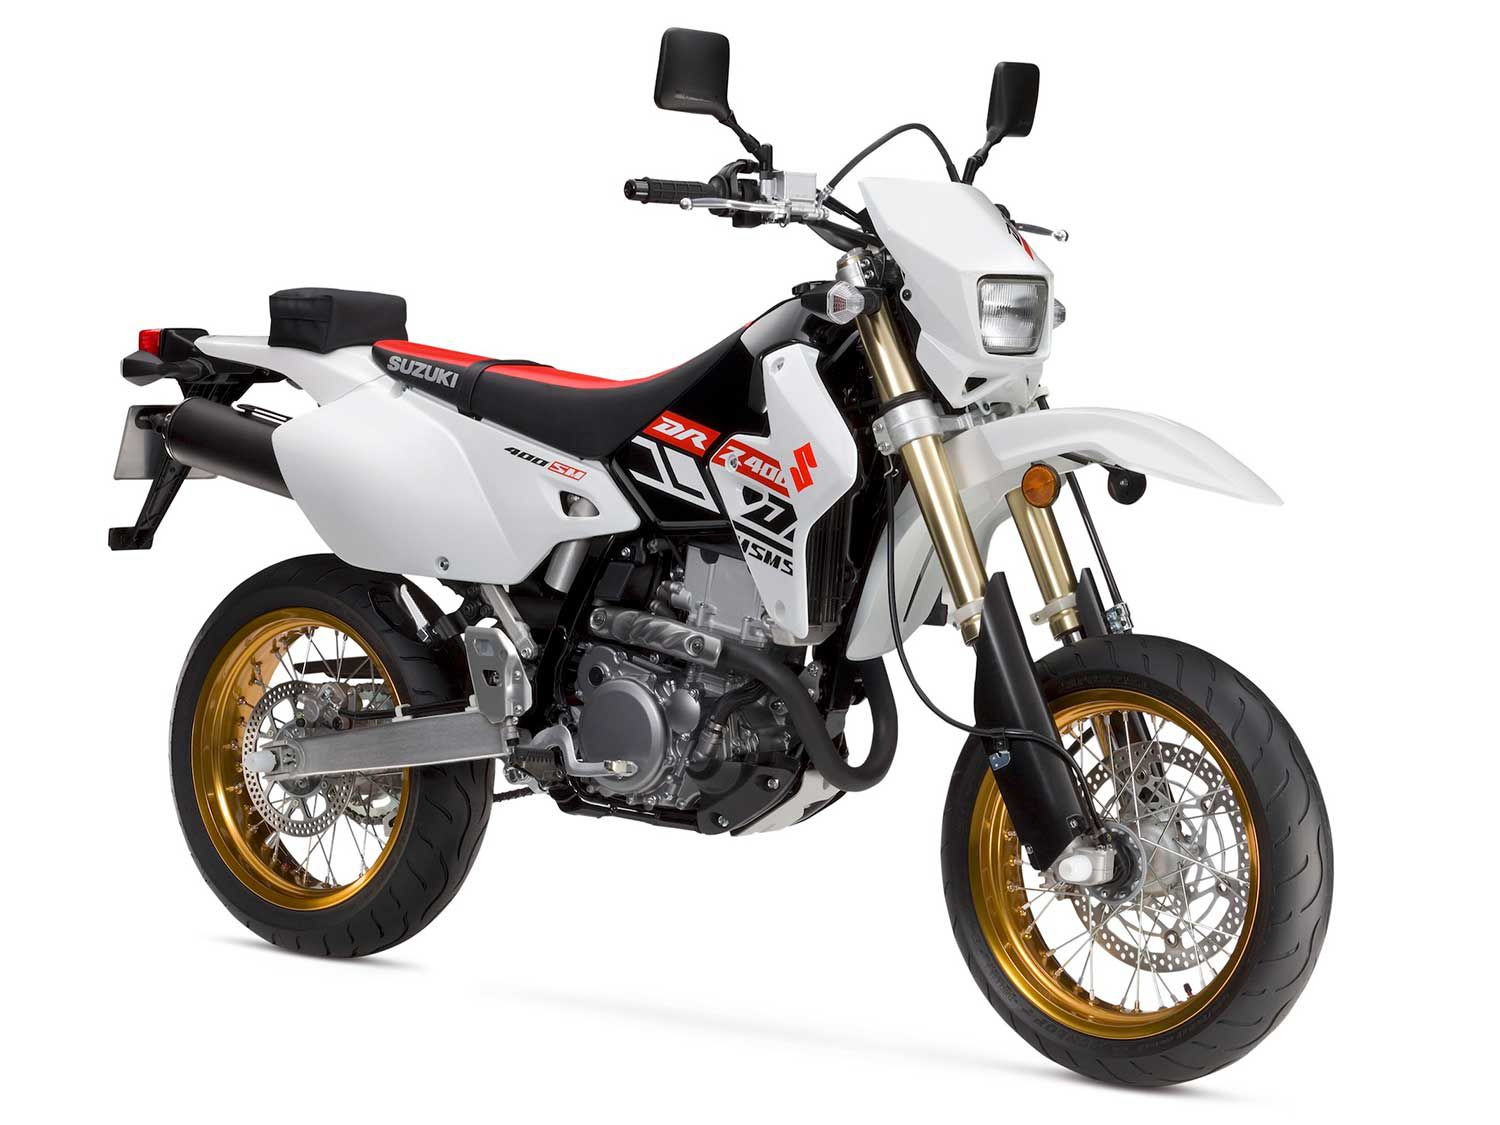 The 2019 Suzuki DR-Z400SM has the same styling and internals as the first one that rolled off the production line.